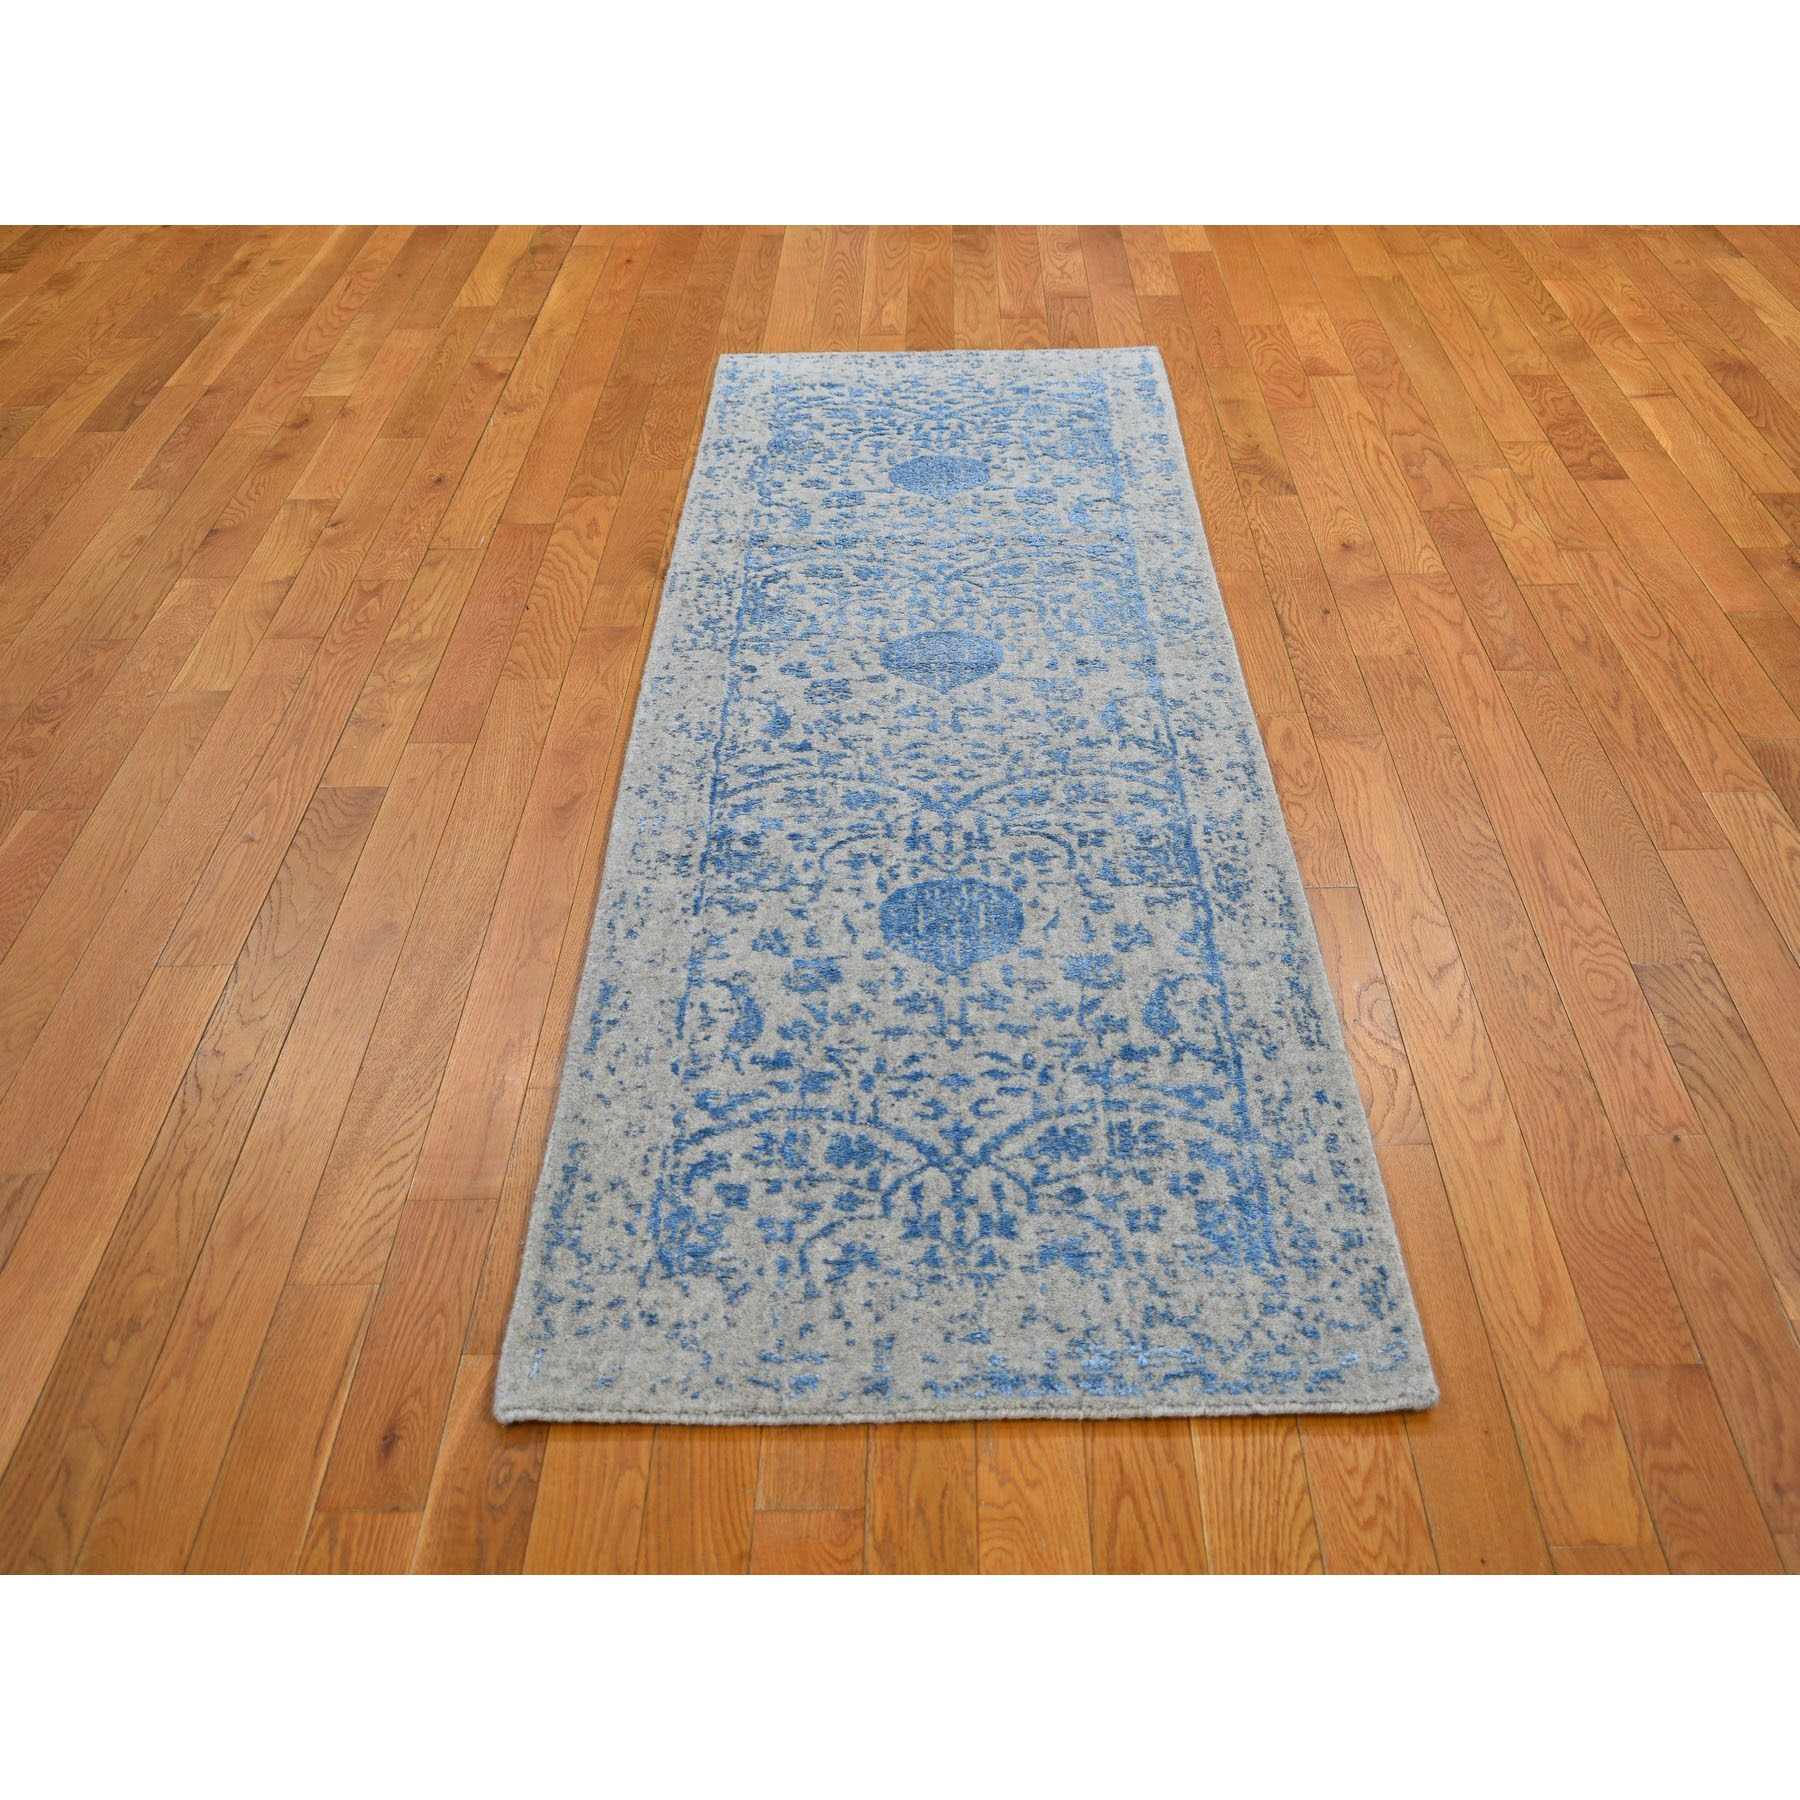 "2'5""x7'9"" Blue Jacquard Hand Loomed Wool and Art Silk Pomegranate Design Runner Oriental Rug"